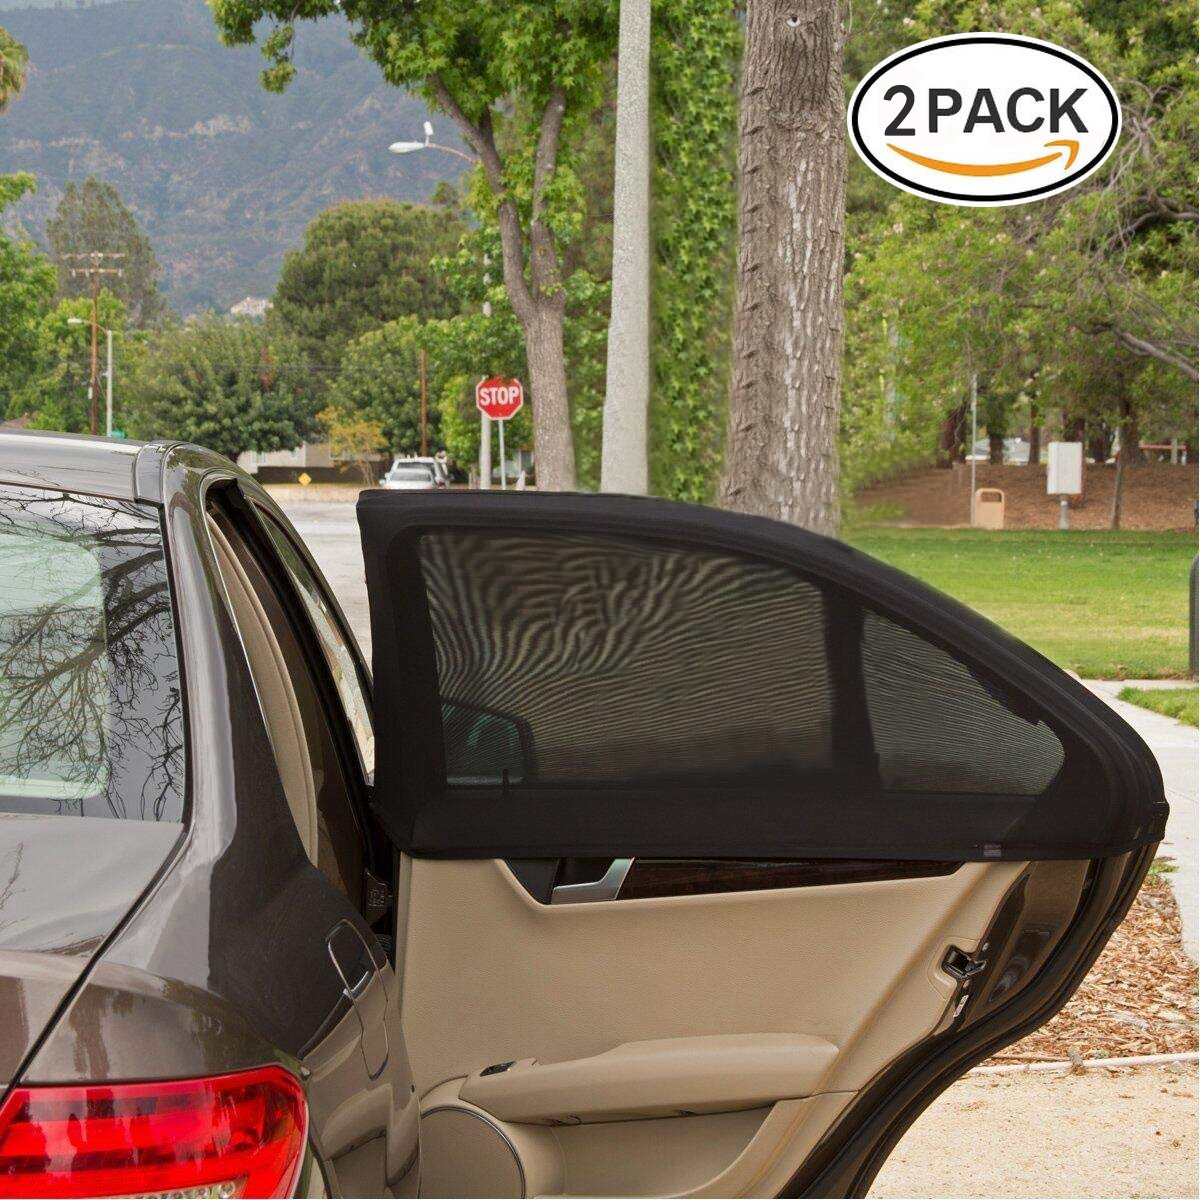 Car Window Shade, COMPATH Car Sun Shades Cover, Universal Fit Premium Quality Twin Pack Covering Entire Rear Side Window Provides Maximum UV Protection Allowing Window to Open and Shut - Medium Size - 2 Pack